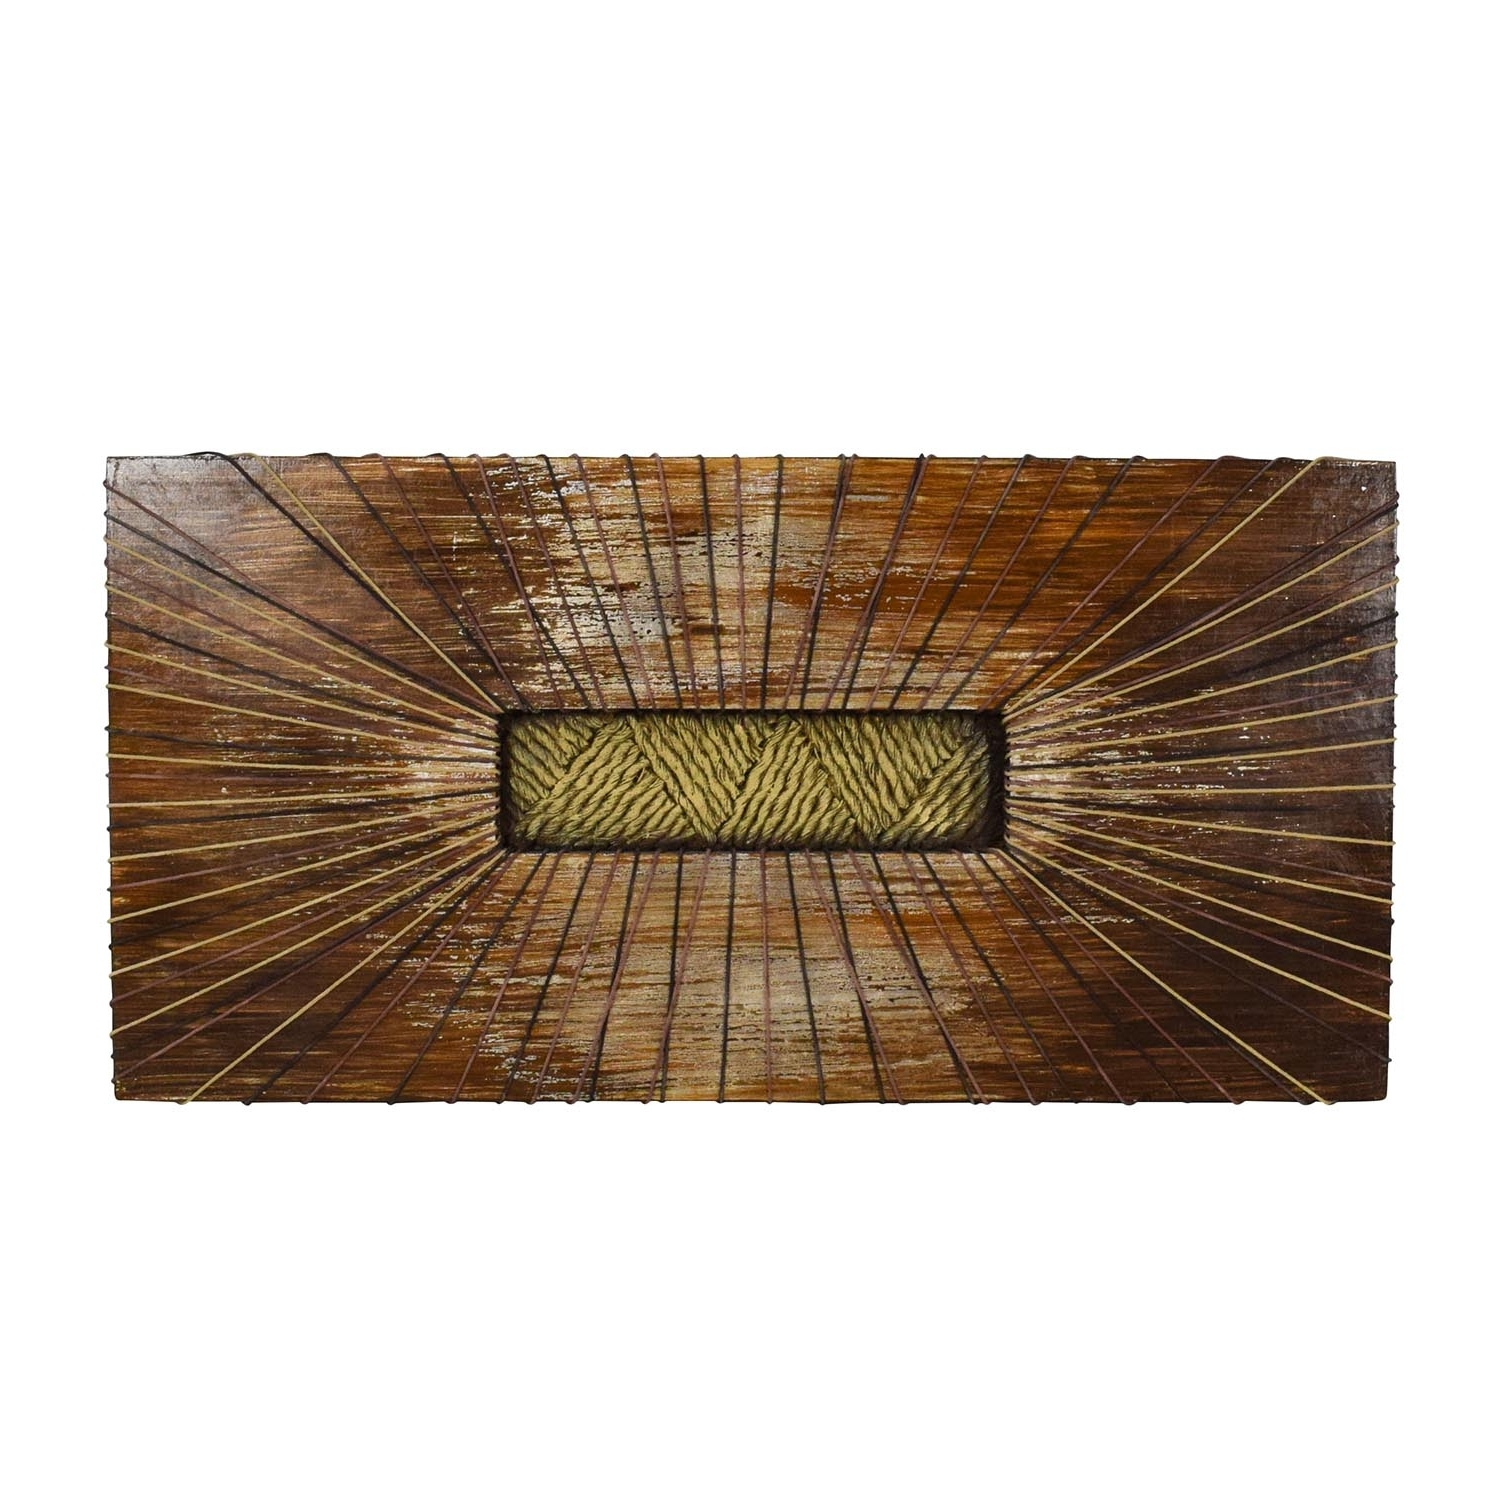 [%83% Off – Uttermost Uttermost Beginnings Metal Wall Art / Decor Intended For Well Liked Uttermost Wall Art|uttermost Wall Art Pertaining To Newest 83% Off – Uttermost Uttermost Beginnings Metal Wall Art / Decor|best And Newest Uttermost Wall Art With 83% Off – Uttermost Uttermost Beginnings Metal Wall Art / Decor|famous 83% Off – Uttermost Uttermost Beginnings Metal Wall Art / Decor For Uttermost Wall Art%] (View 8 of 20)